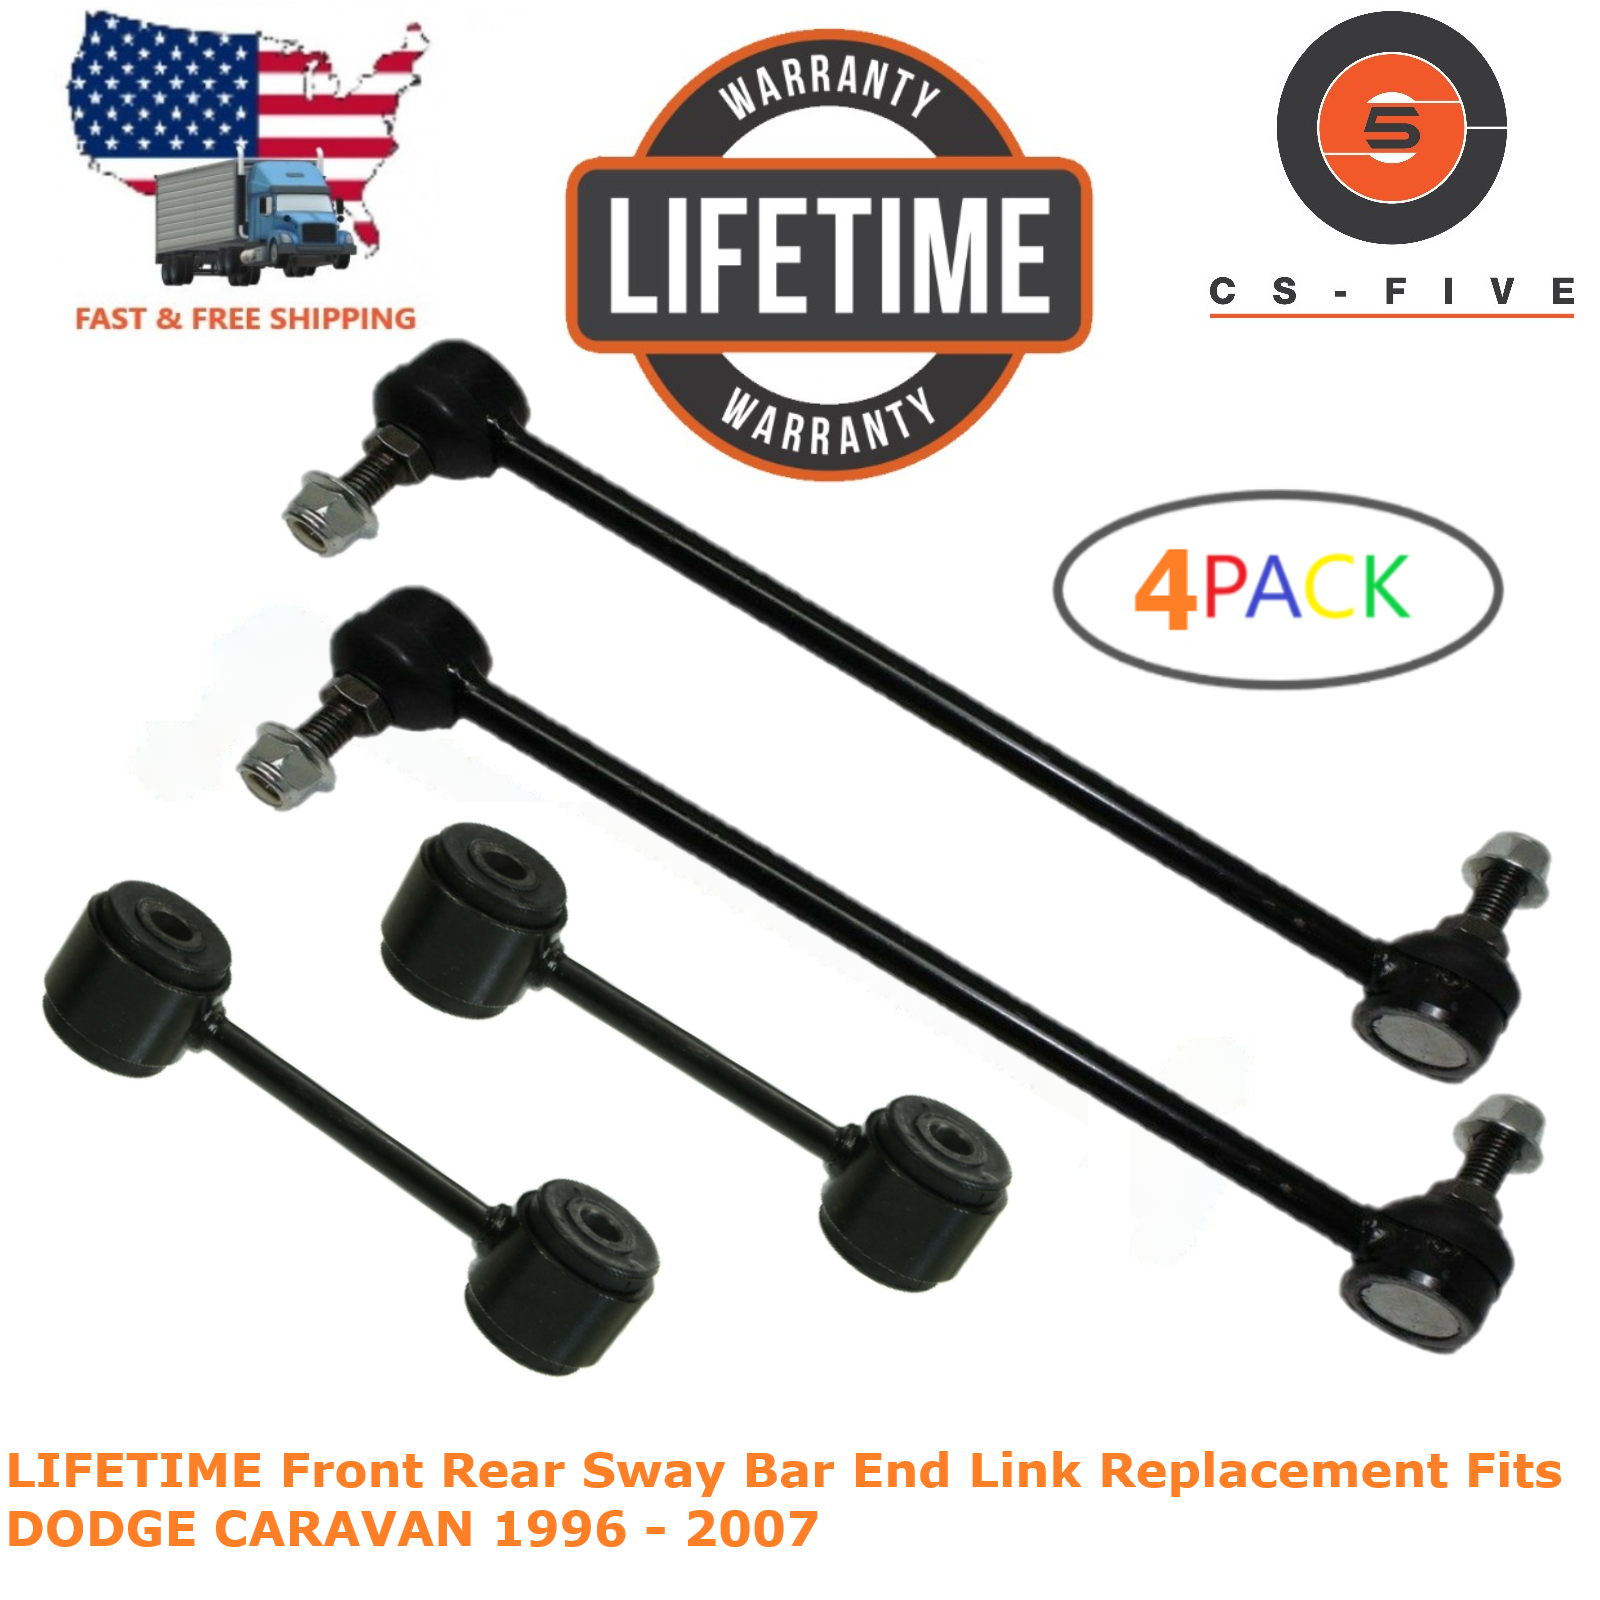 LIFETIME Front Rear Sway Bar End Link Replacement Fits DODGE CARAVAN 1996 - 2007 4684292